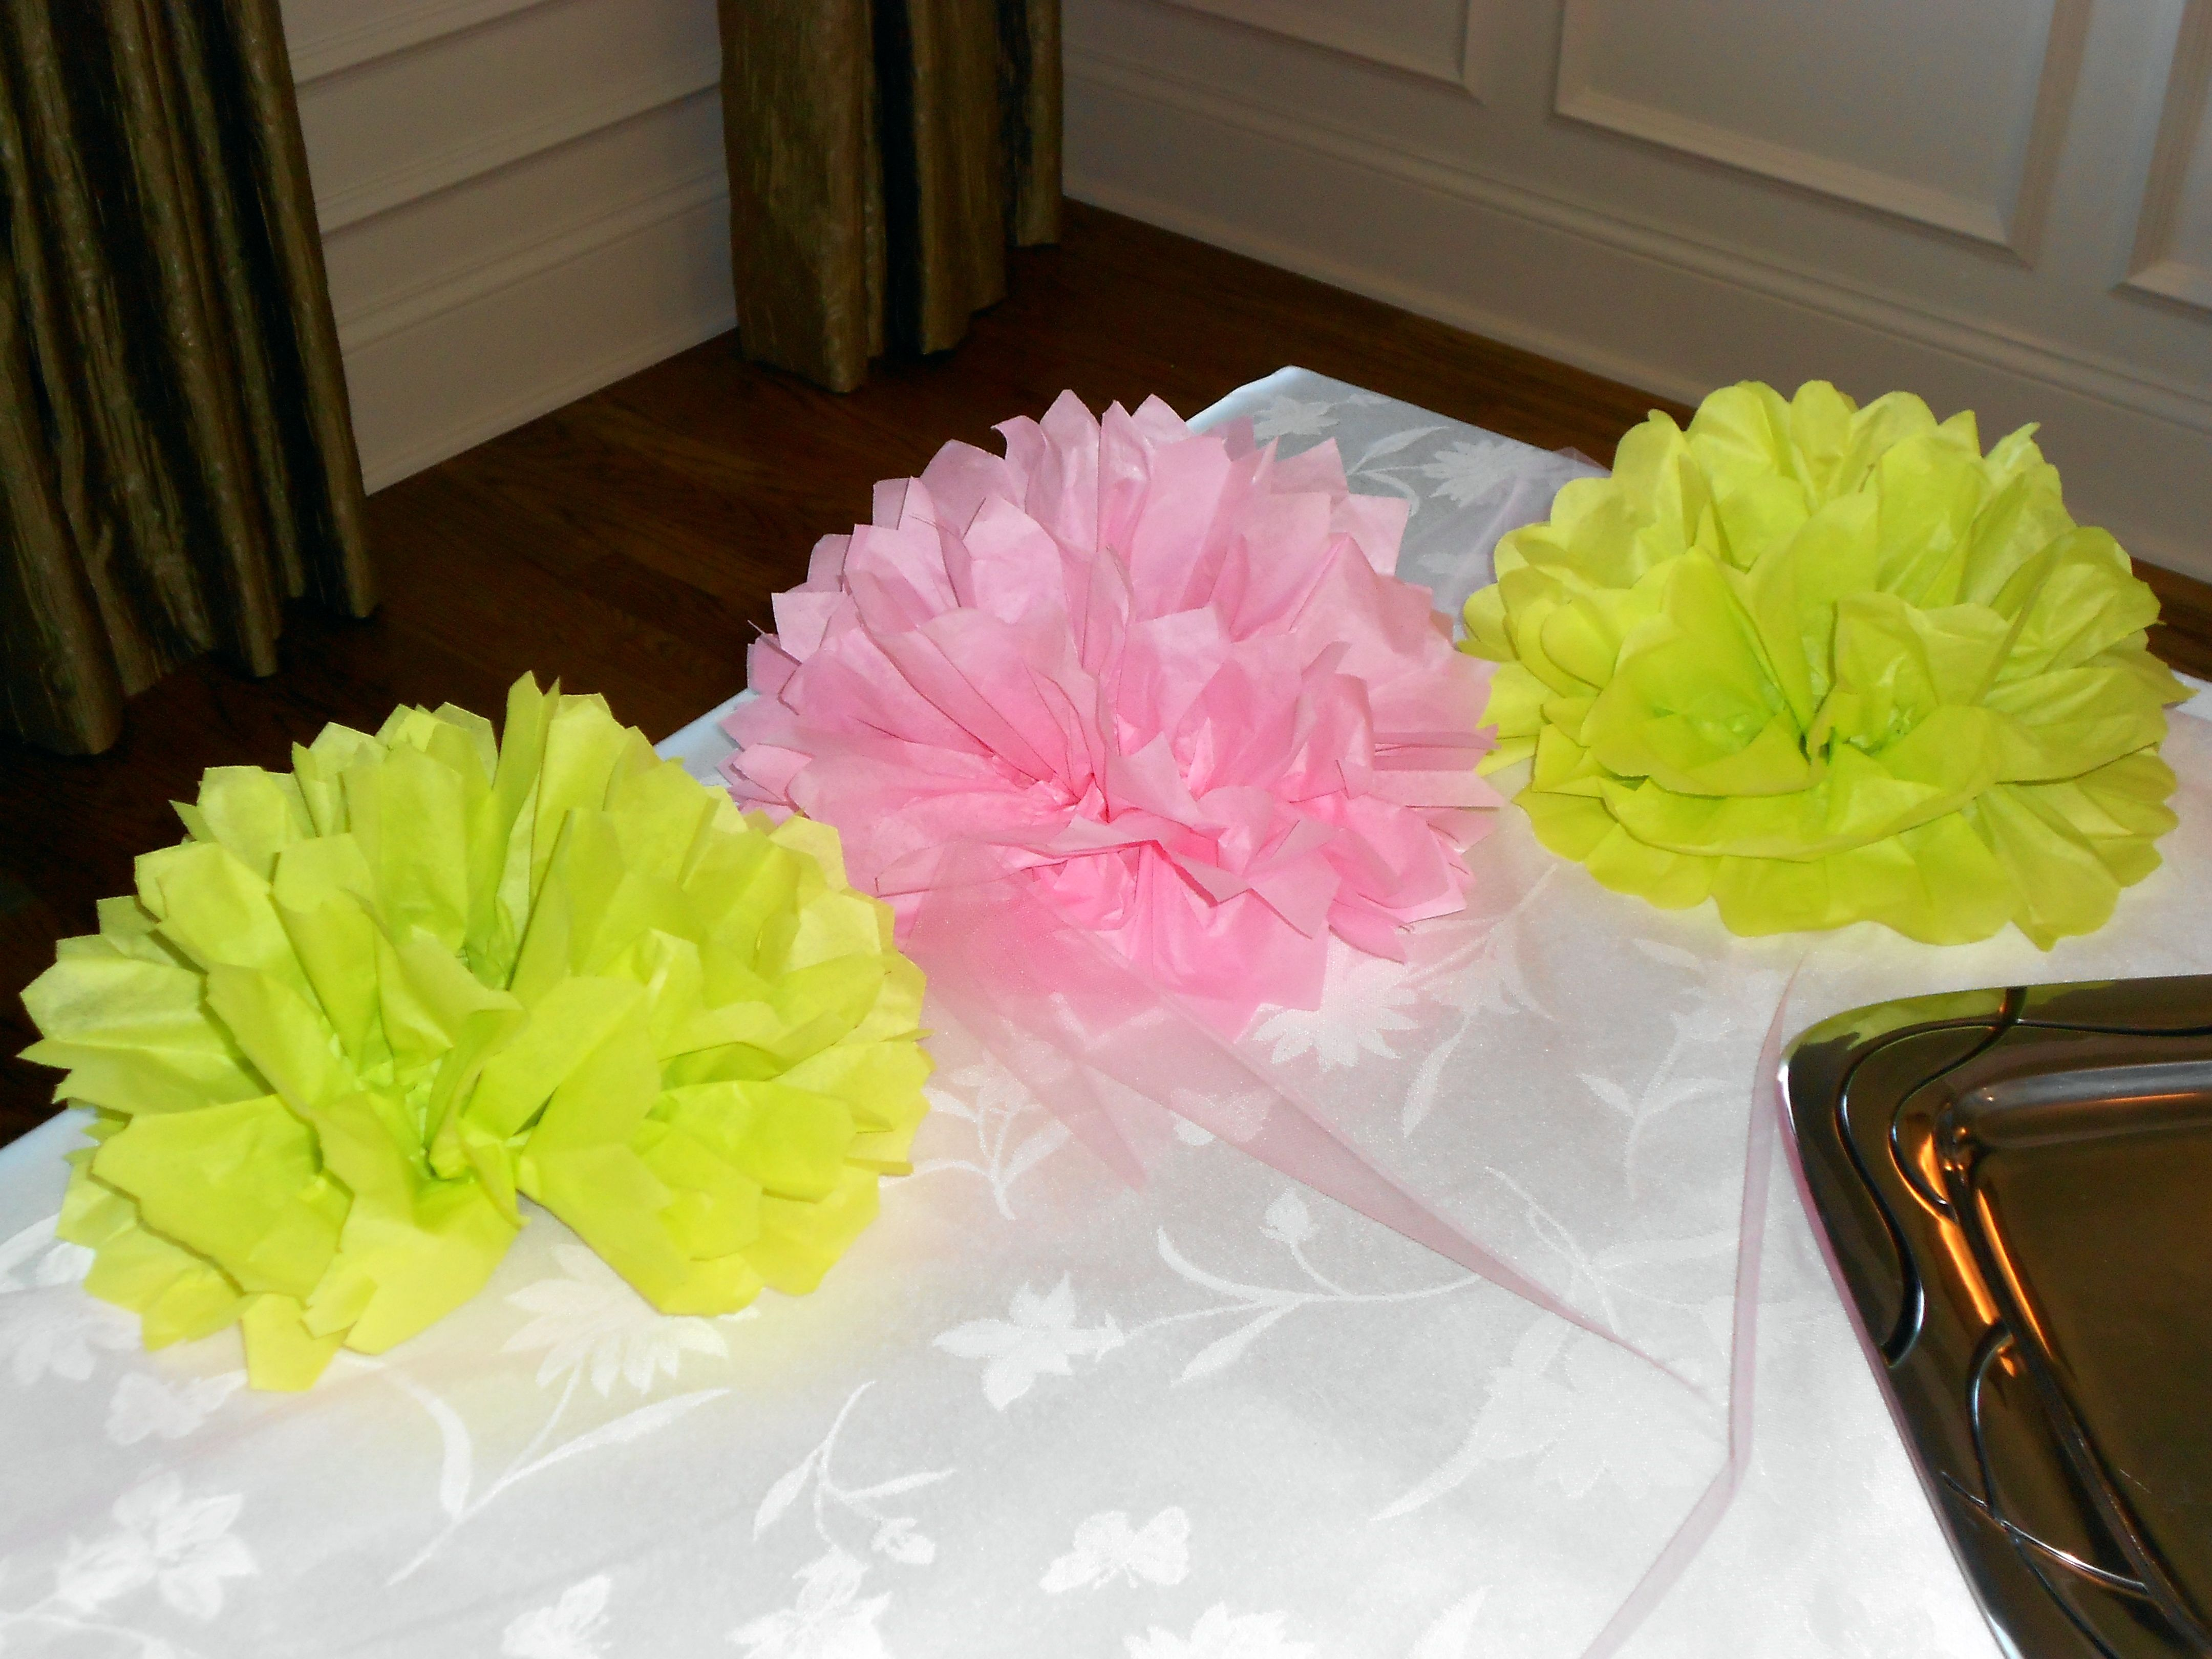 Tissue Paper Flowers Add A Splash Of Color For Not Much Effort Fold